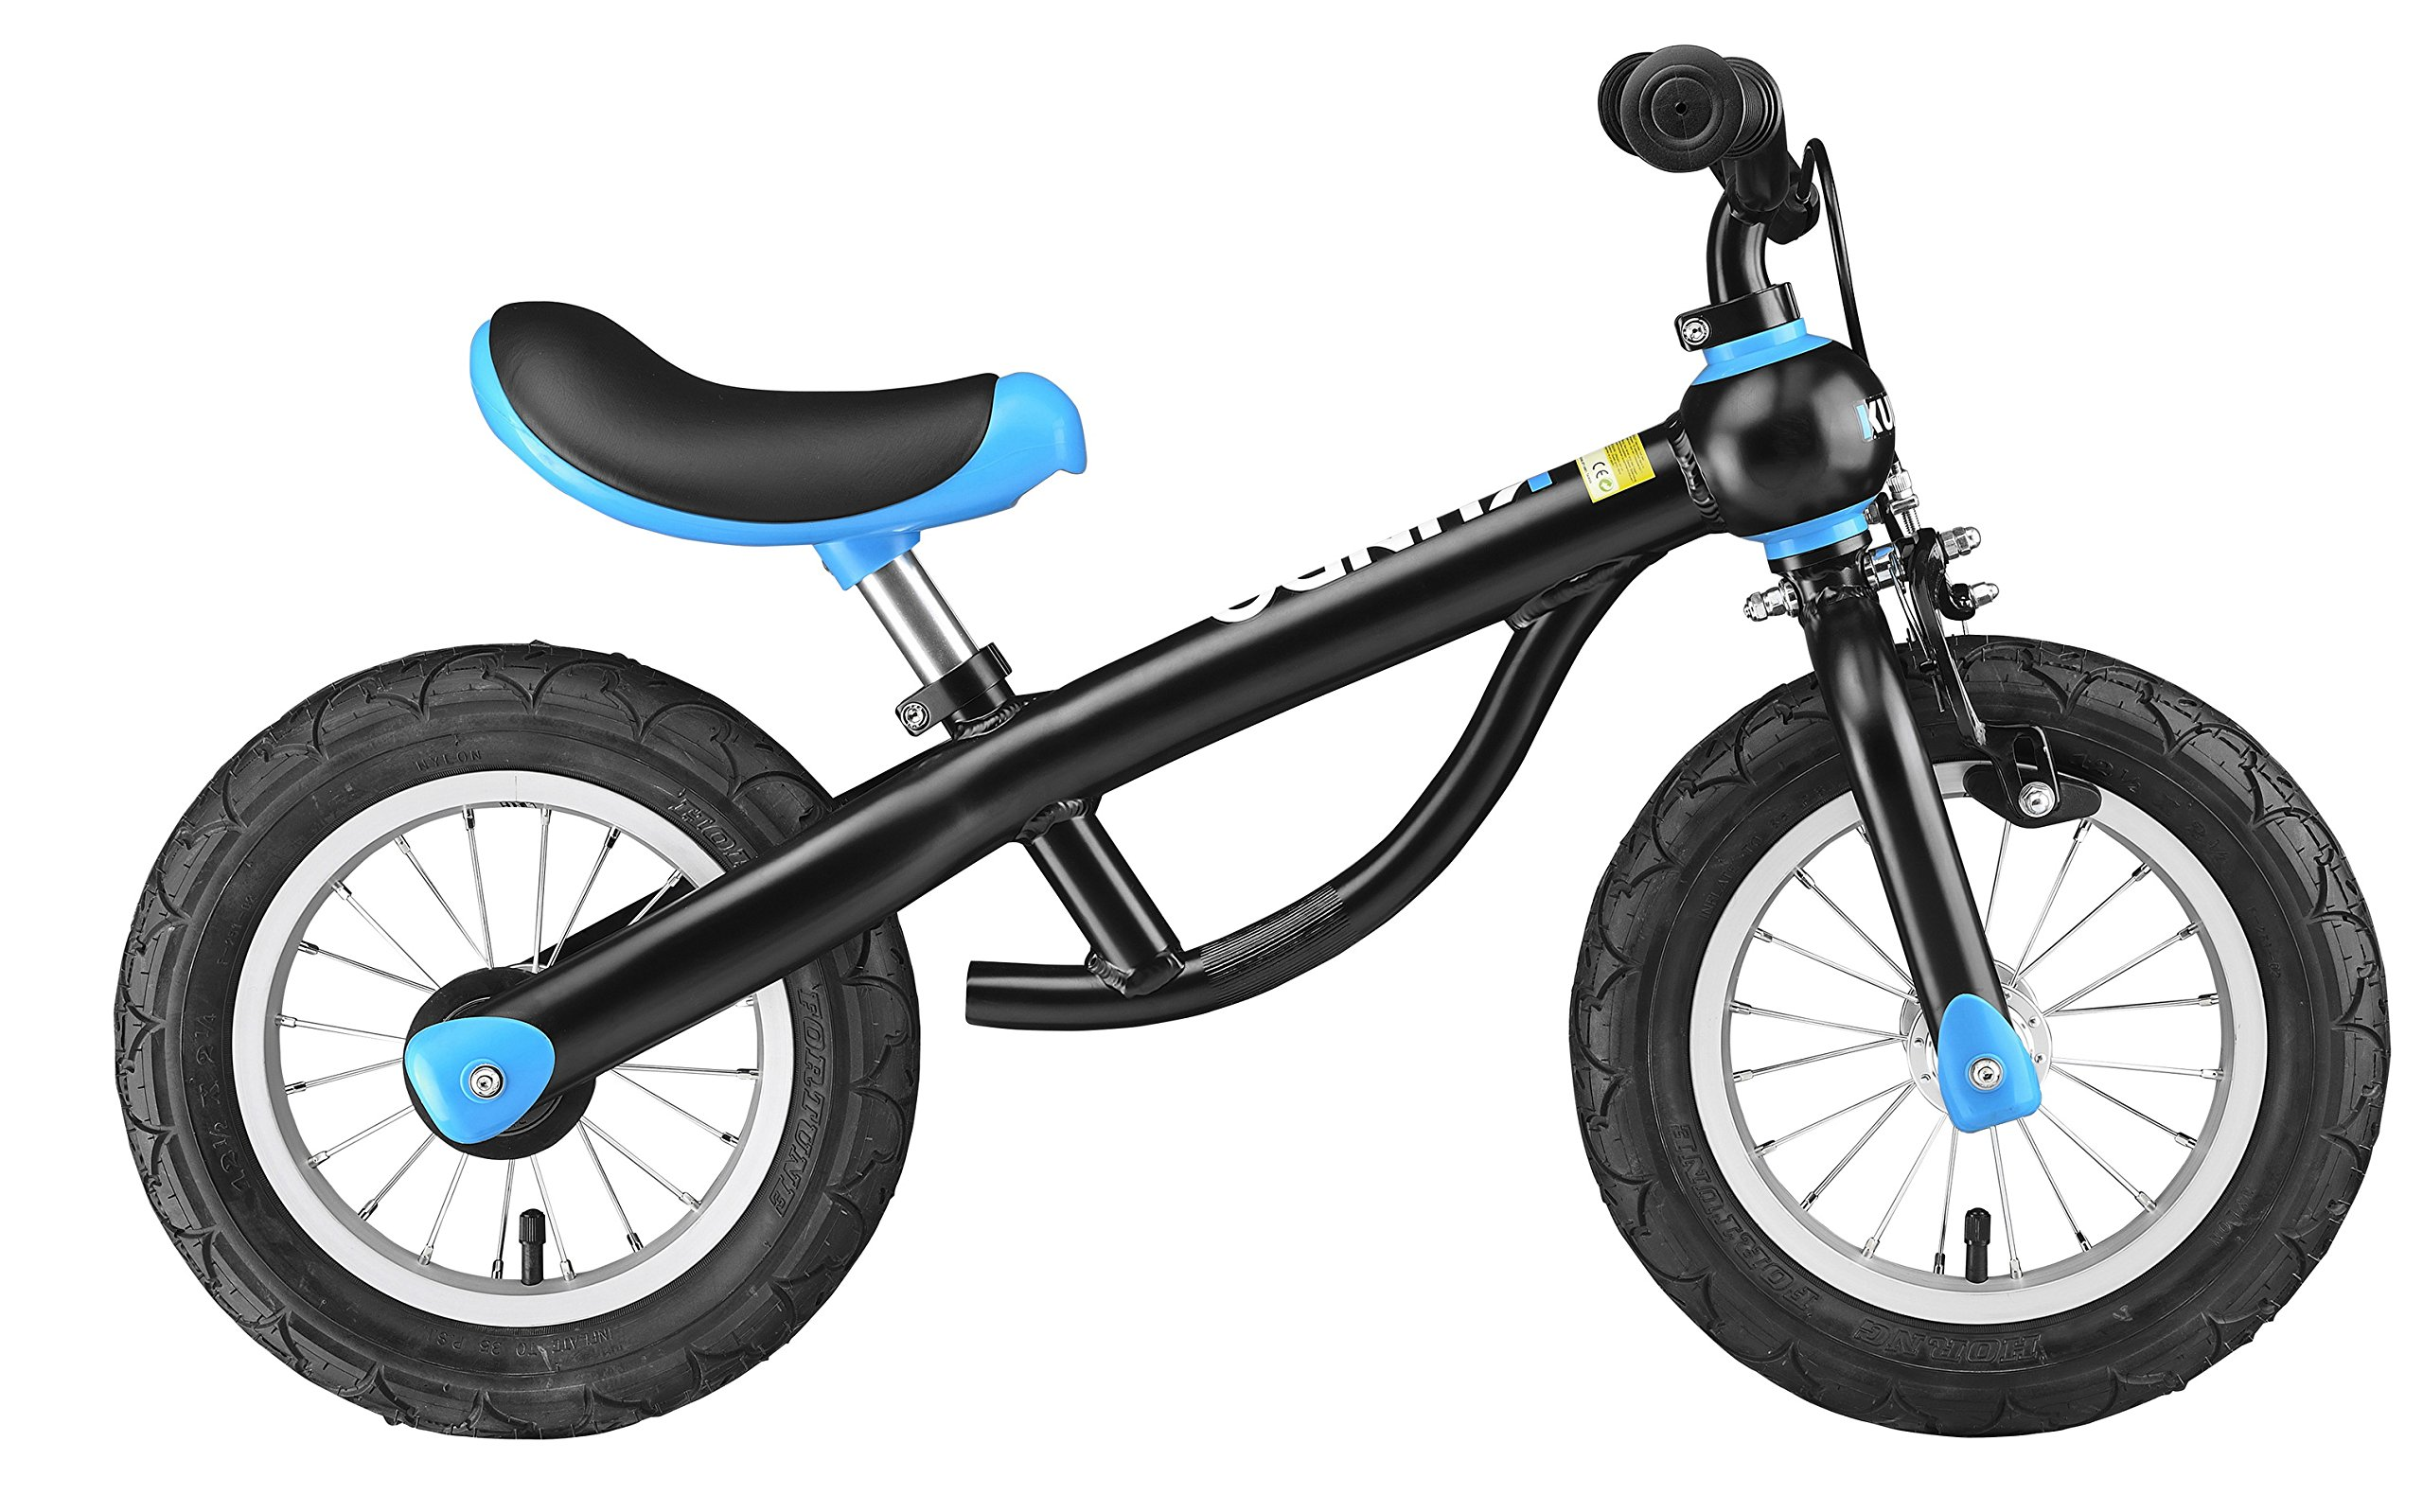 KUNDO Smarttrail Kids Balance Bicycle easy convert to Children Bike 12'' Extra Lightweight Easy to carry 2 in 1 w/Adjustable Cycling Seat&Handlebar in Red Blue Pink colors (Blue)